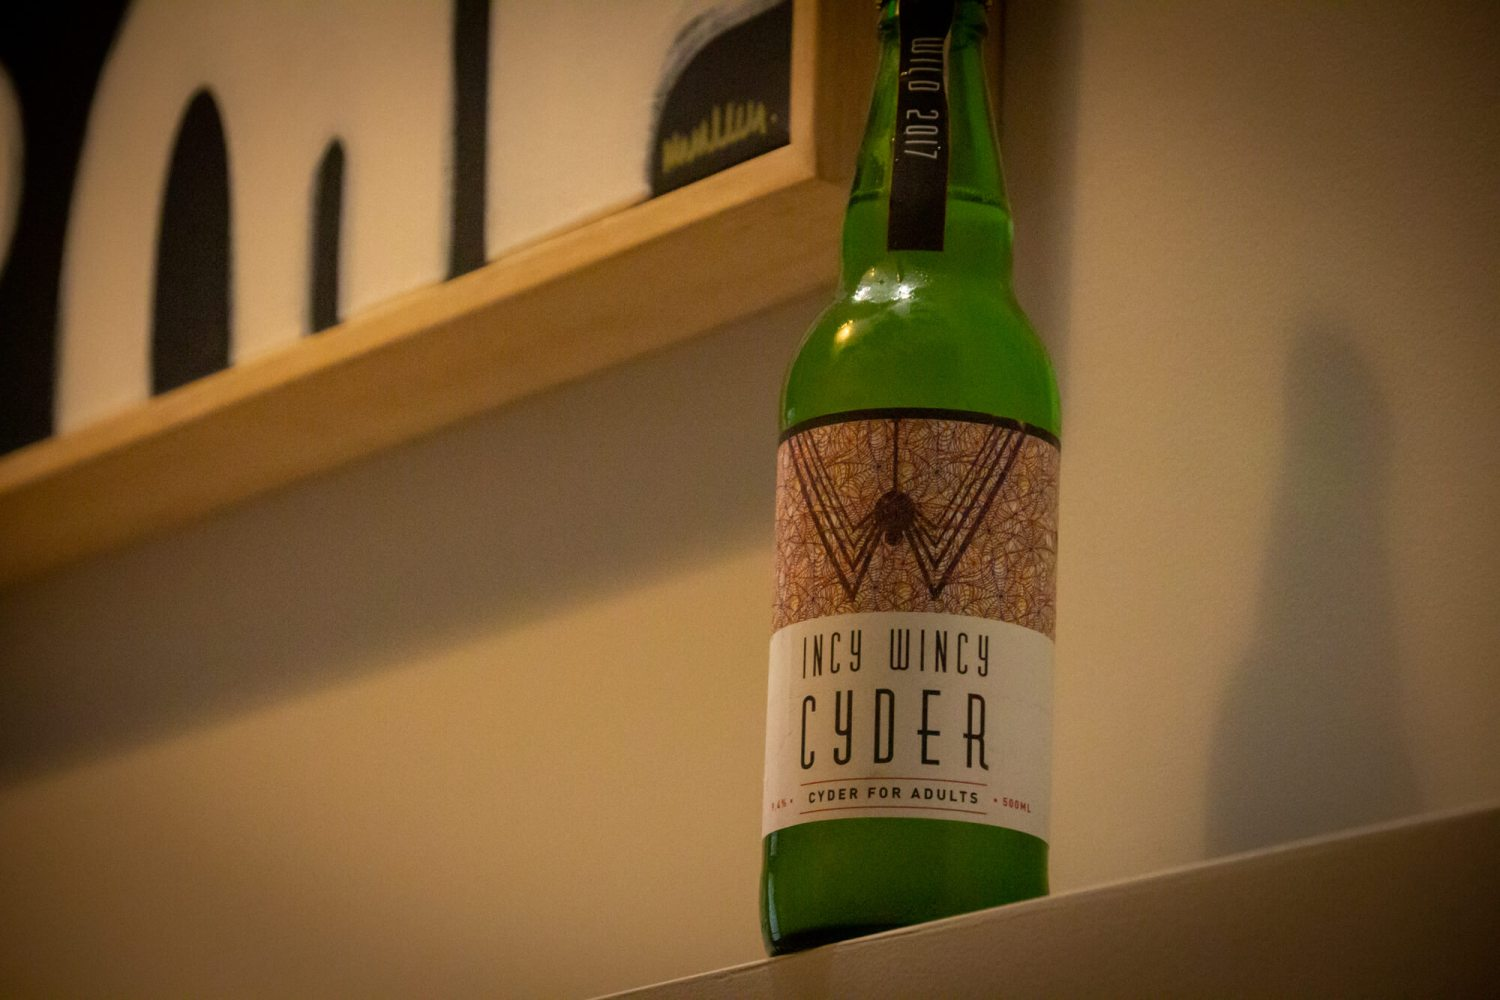 bottle of Incy Wincy Cider Wild 2017